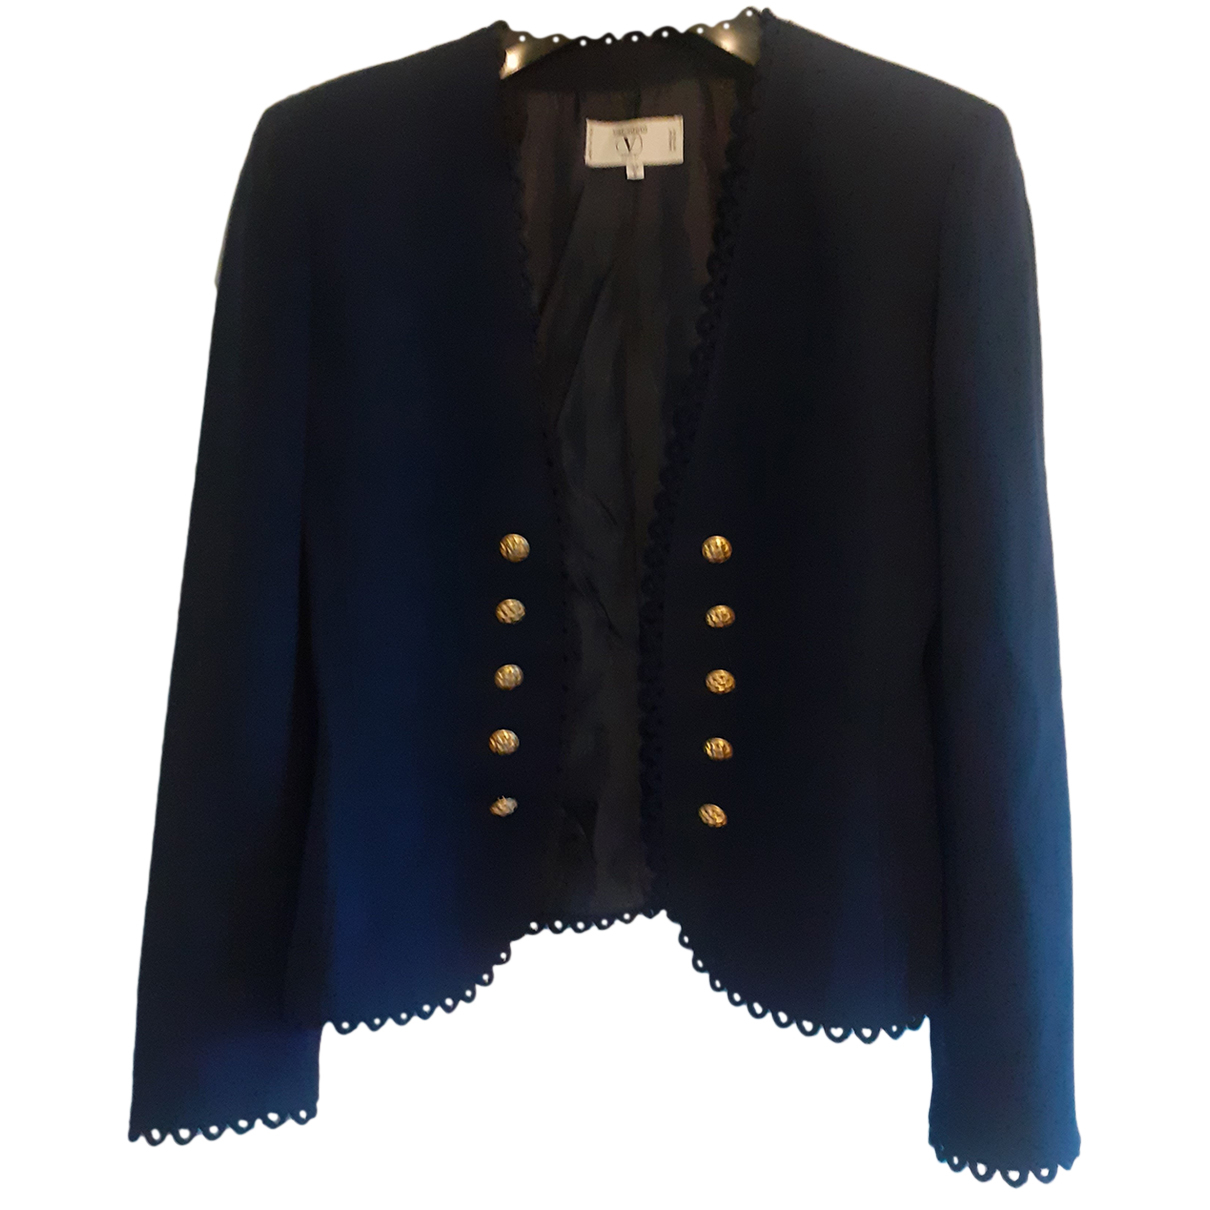 Valentino Garavani N Navy Wool jacket for Women 8 UK